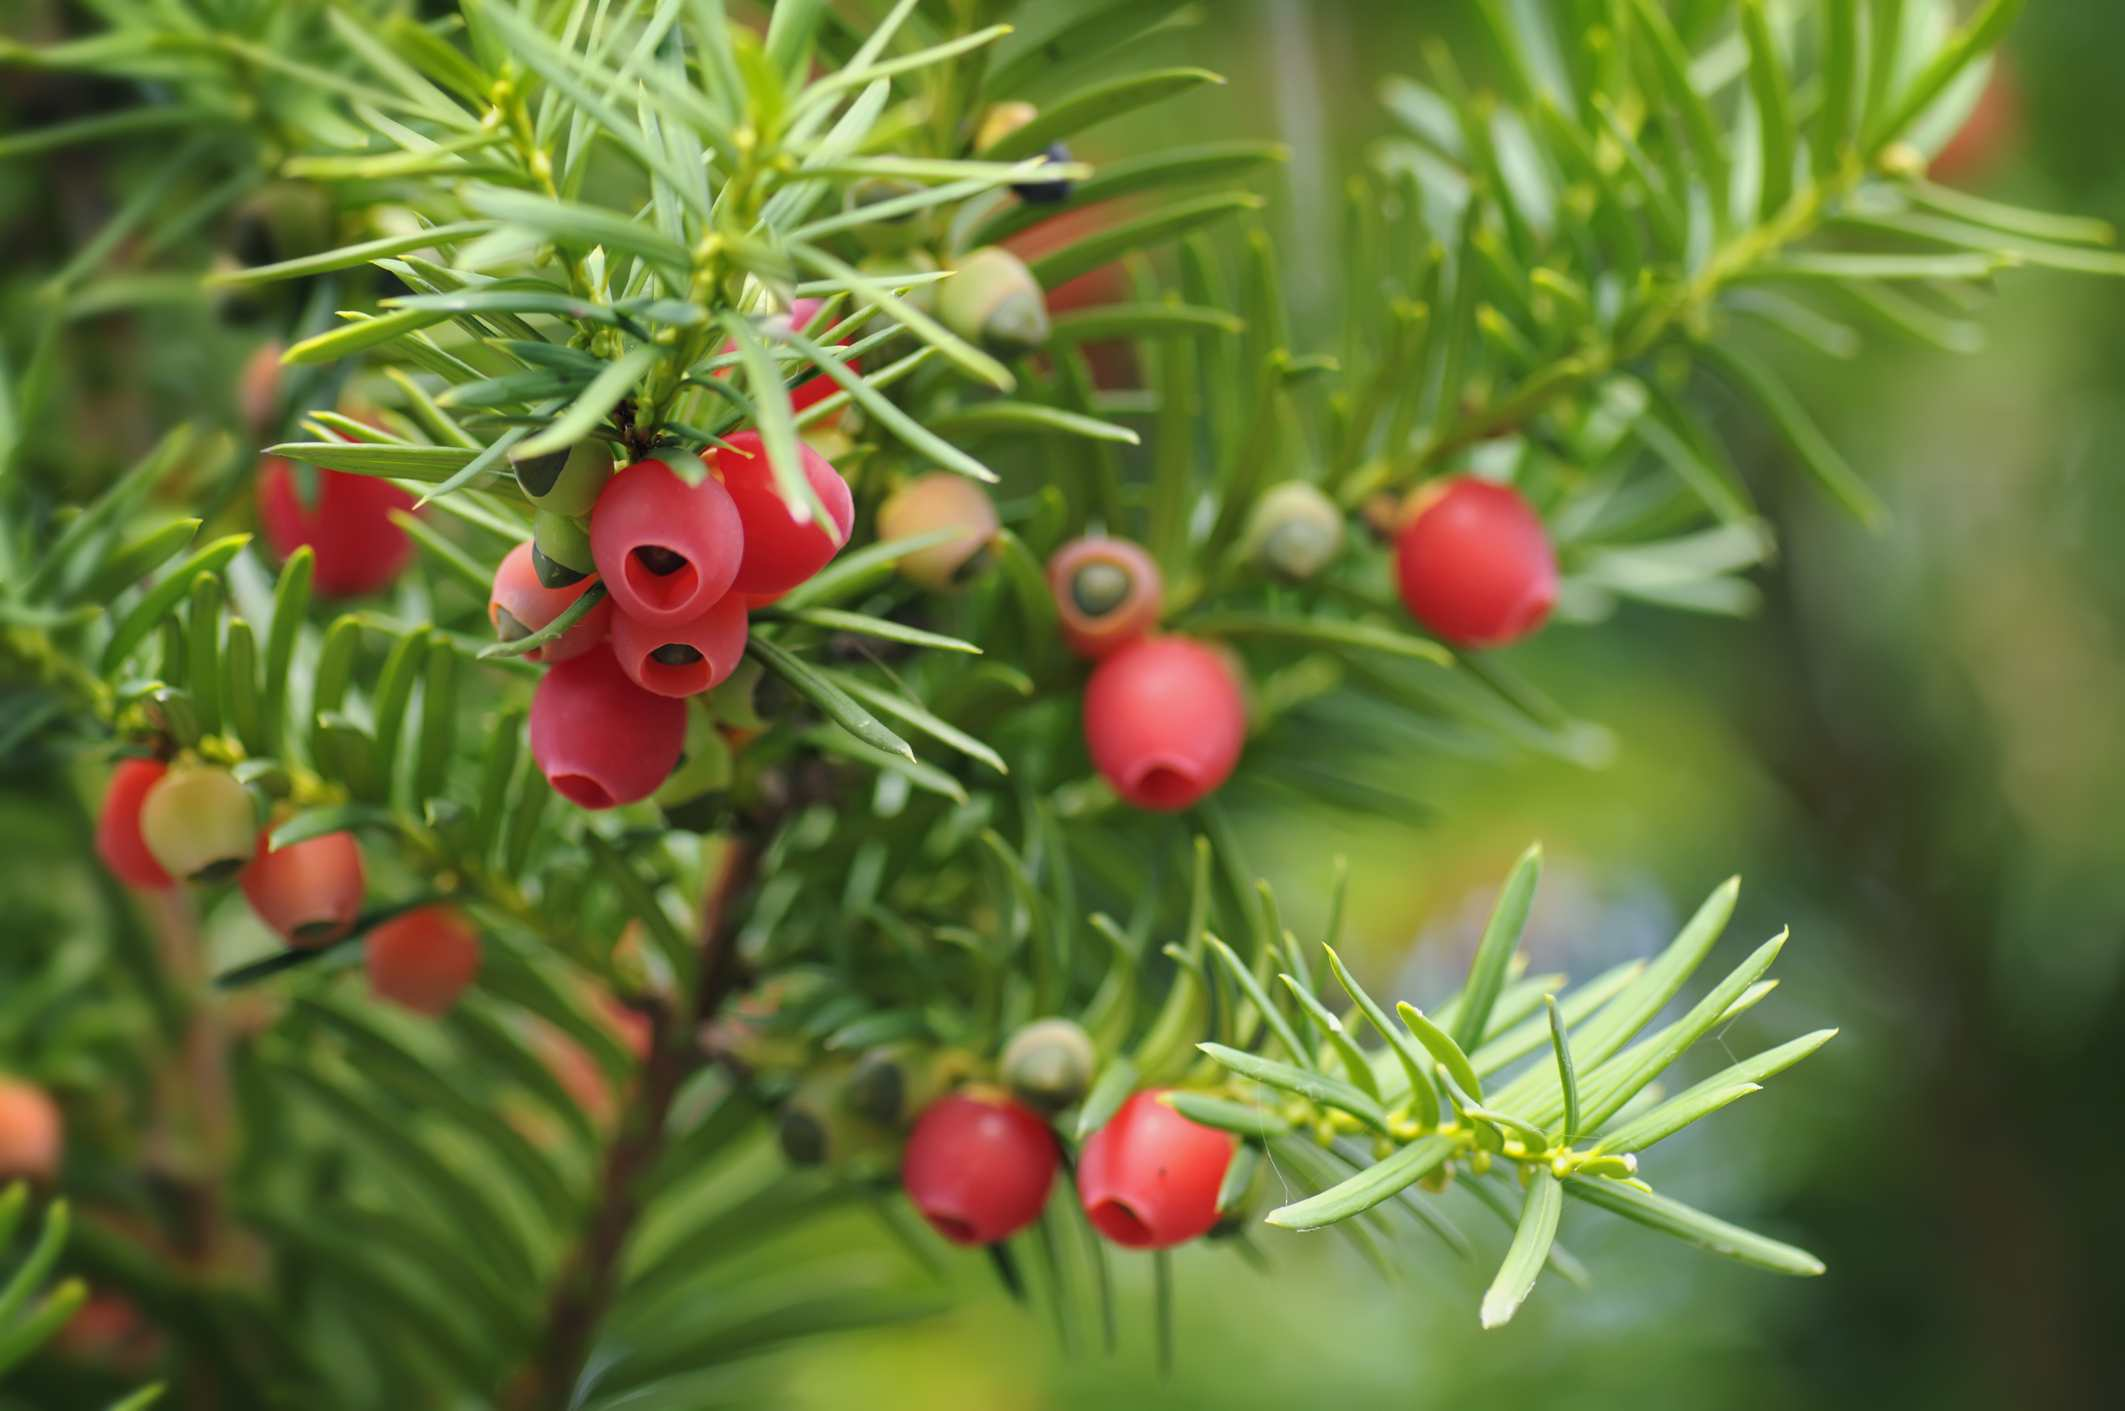 Closeup of yew bush with red berries (arils).